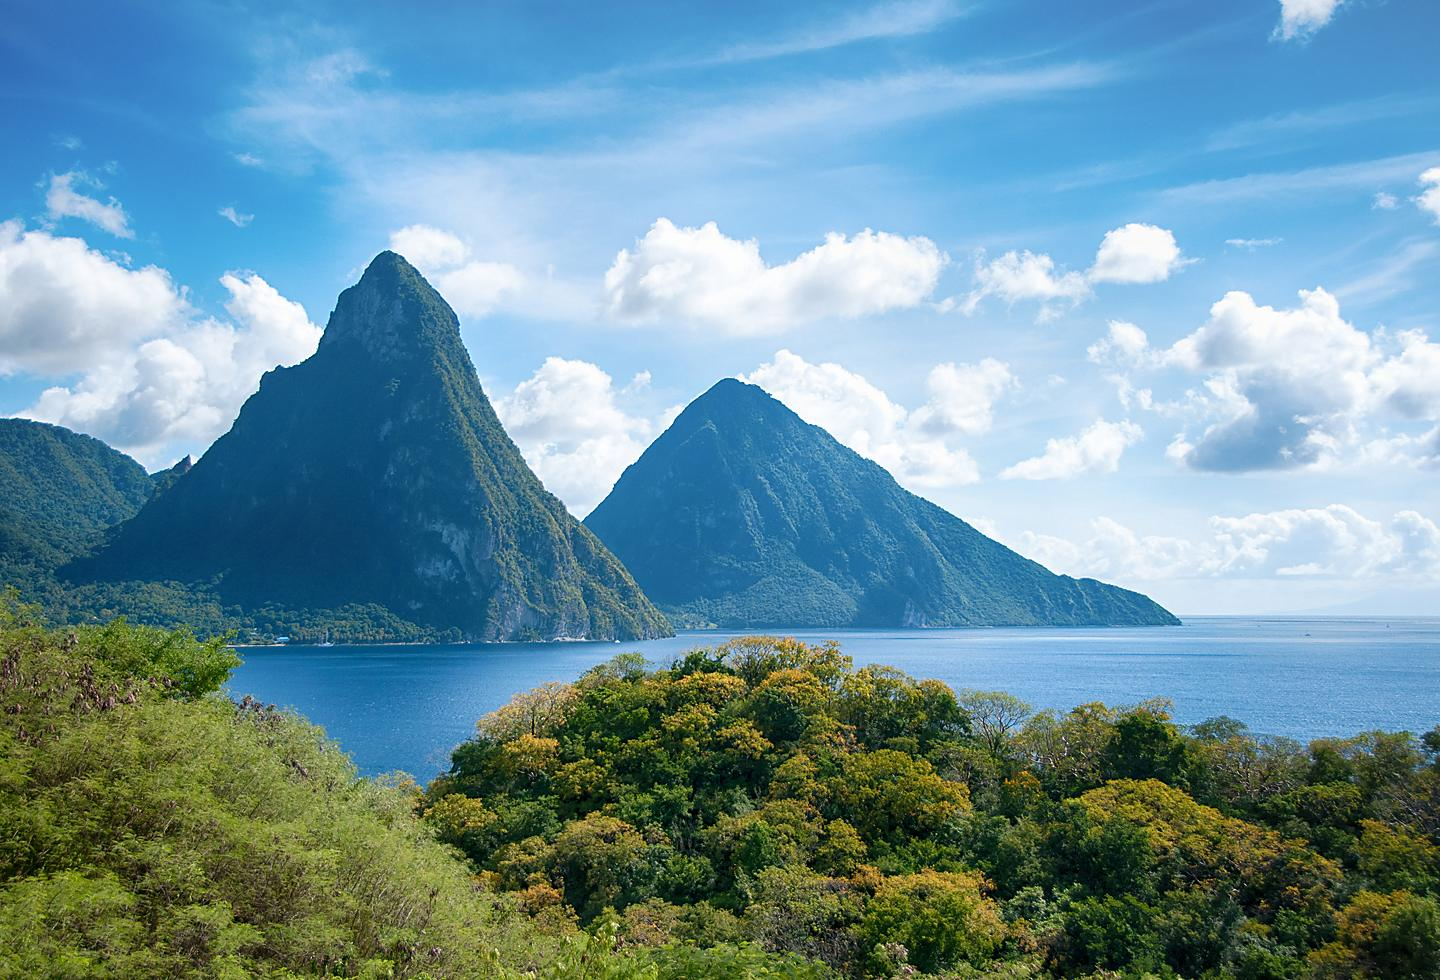 Saint Lucia Lush Mountain Coast